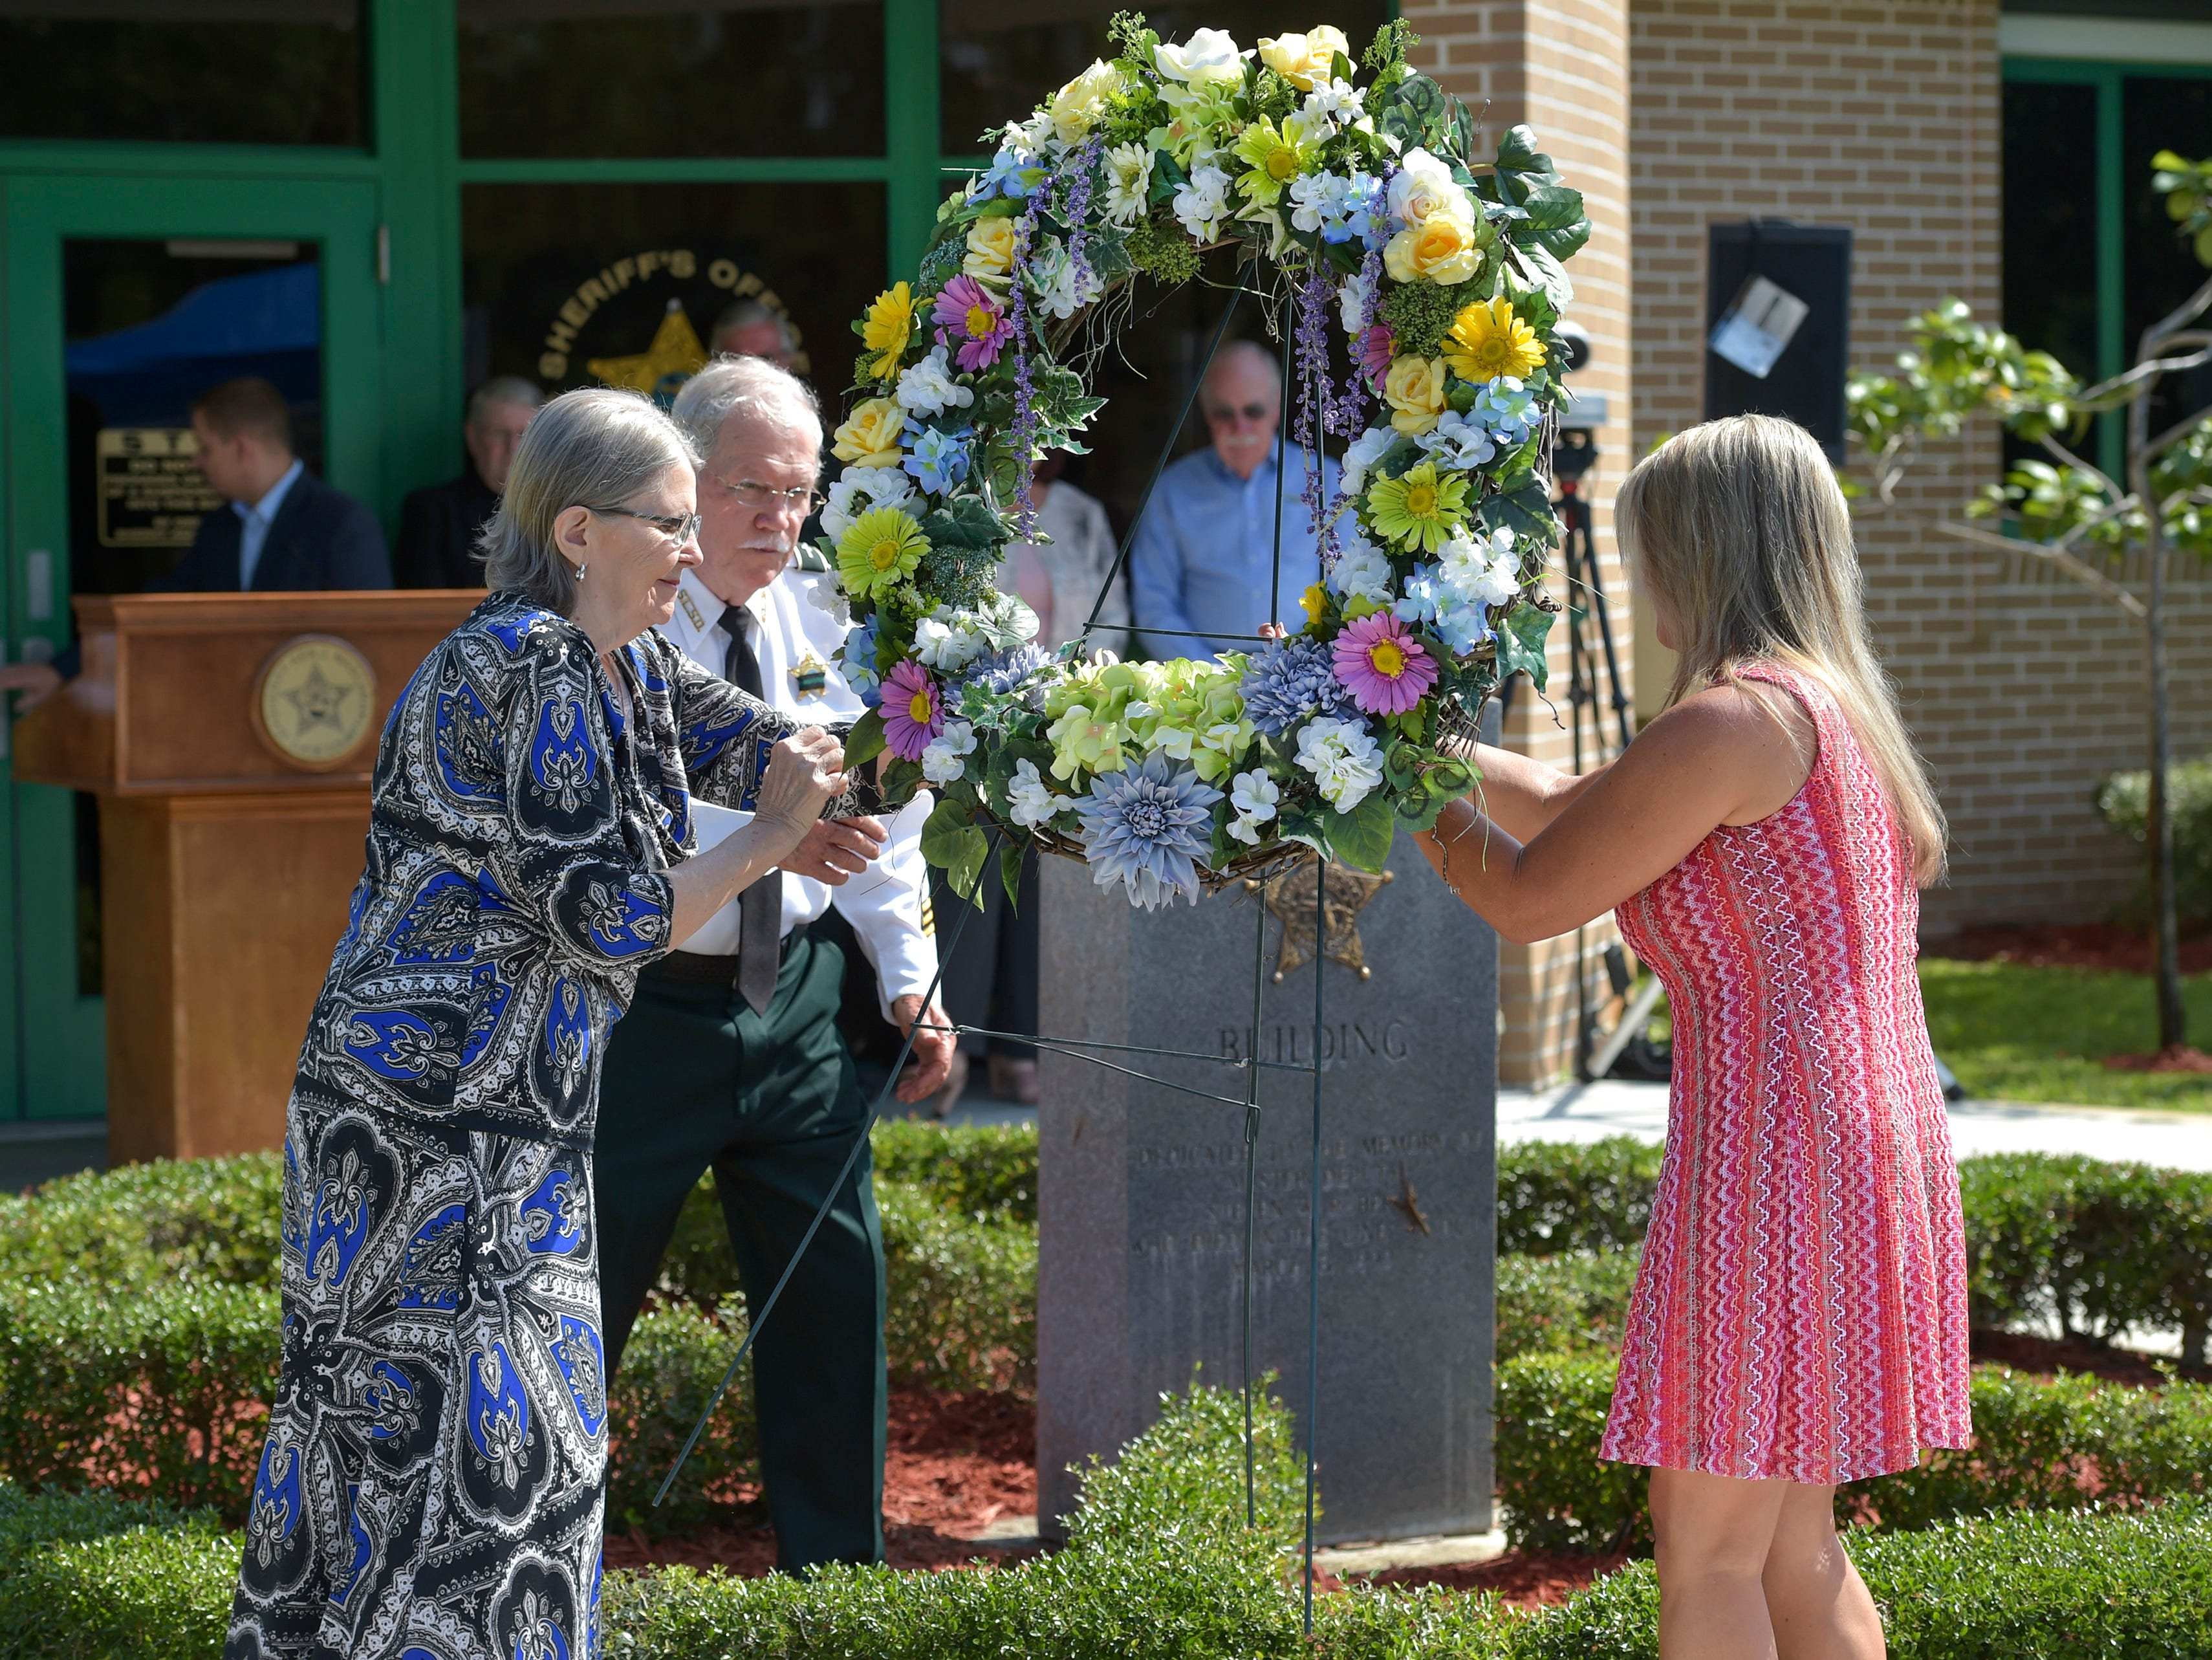 Margaret Hover-Runnion (left), wife of the late Master Deputy Joseph Hover, and Tonya Scavuzzo, wife of the late Captain Charlie Scavuzzo, position a memorial wreath of remembrance with the help of Chaplain David Thompson (second from left) during the St. Lucie County Sheriff's Office Laying of the Wreath Service for their fallen deputies for National Law Enforcement Memorial Week at the sheriff's office Master Deputy Steve Roberts Building on Monday, May 6, 2019, in Fort Pierce. The St. Lucie County Sheriff's Office memorial honored the eight heroes and one K9 that gave their lives serving the community of St. Lucie County. The service was held a week prior to the official National Police Week, due to Captain Charlie Scavuzzo being added to the National Law Enforcement Memorial Wall in Washington D.C. on May 13, and also his being recognized at the annual National Peace Officer's Memorial Service on the lawn of the U.S. Capitol on May 15.